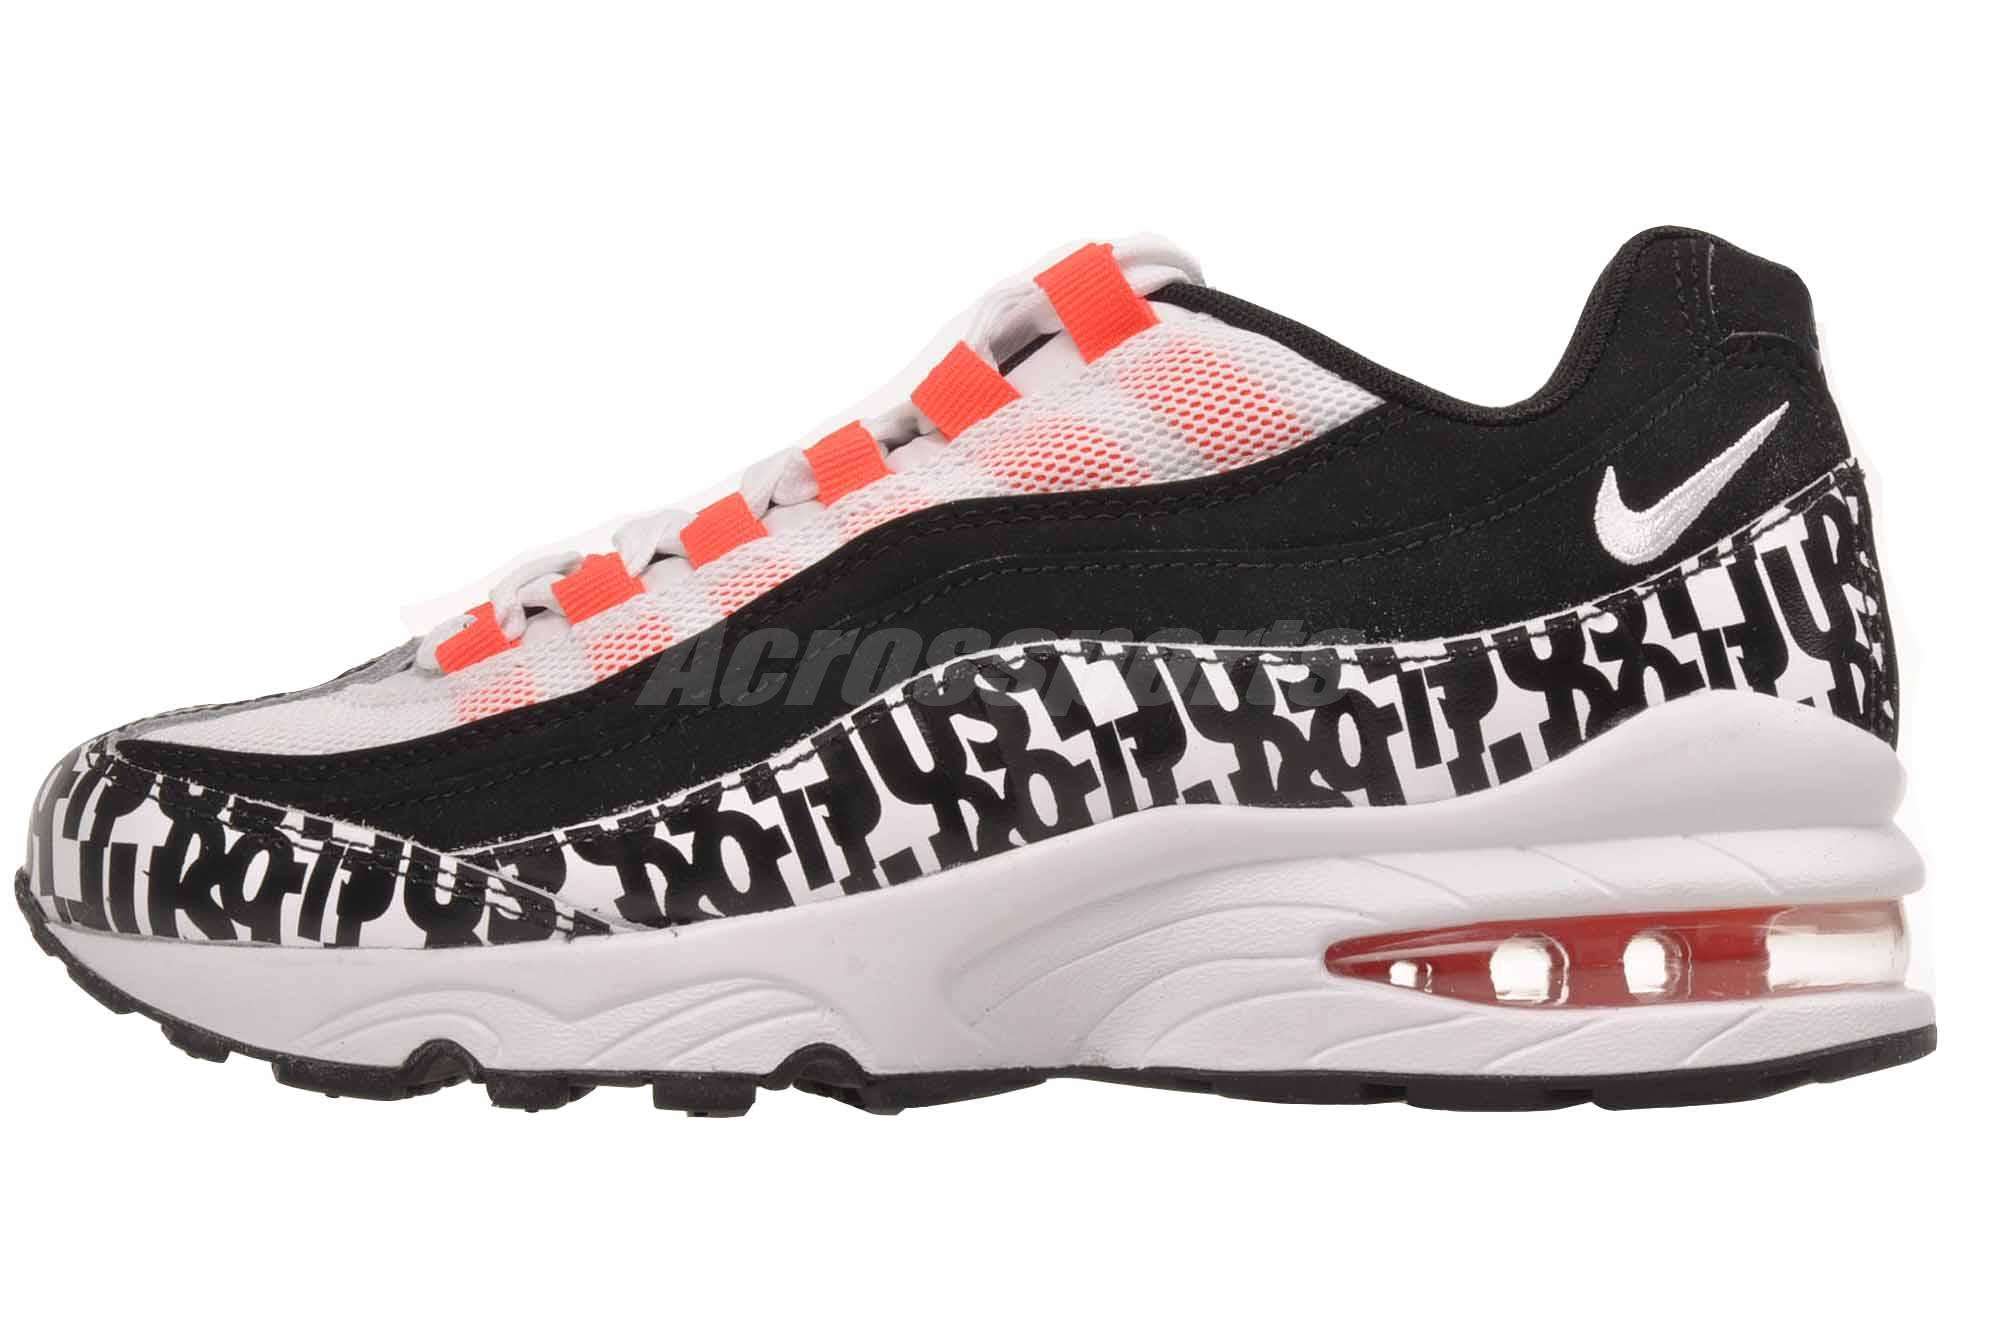 new style d5568 75e4c Details about Nike Air Max 95 Print GS Kids Youth Running Shoes Black White  AQ9711-001